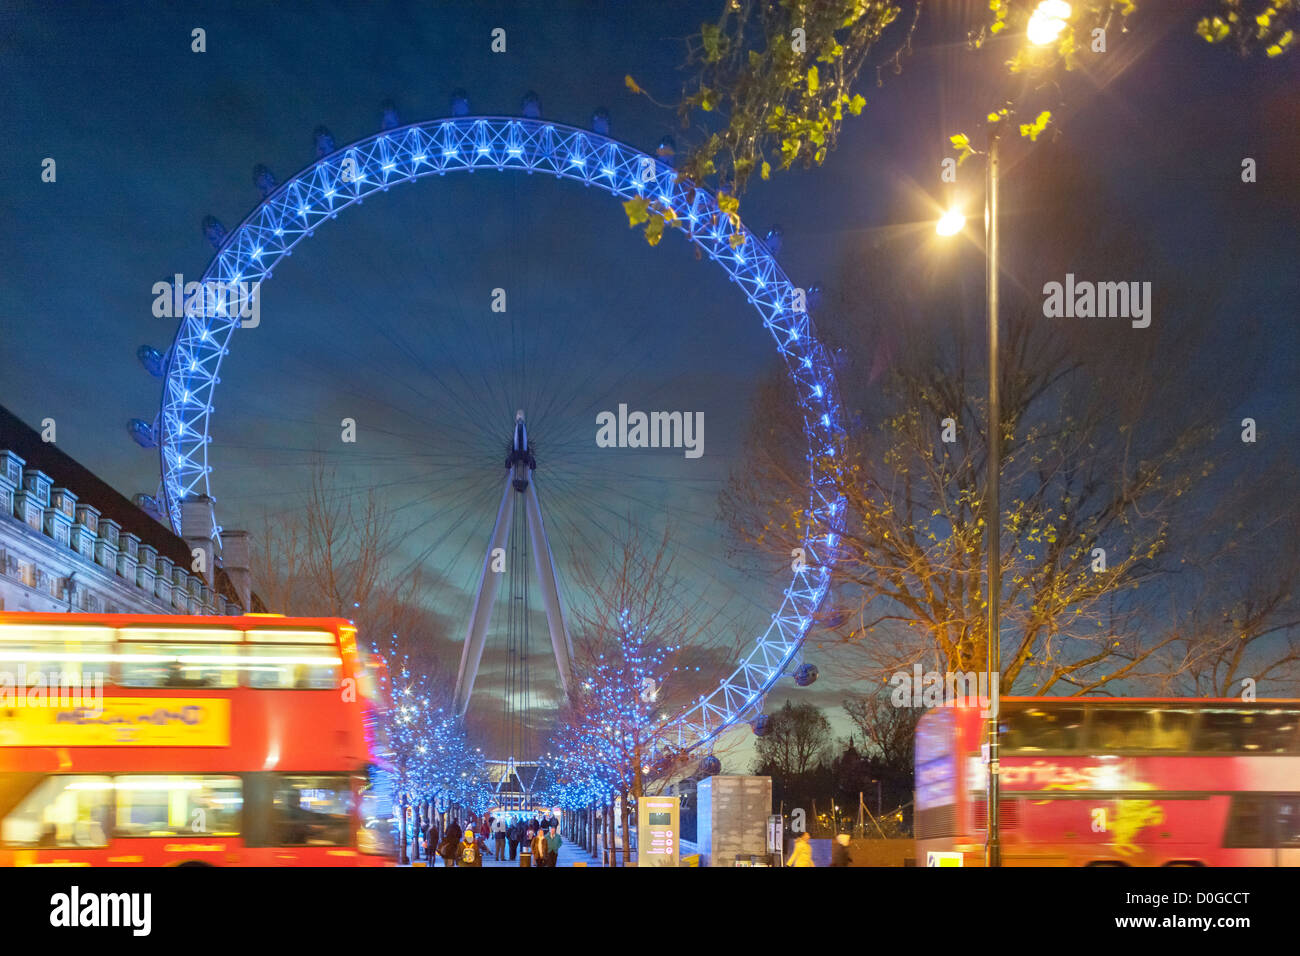 London Eye Millennium Wheel with blue Christmas Xmas lights and double-decker bus at dusk in winter, December - Stock Image